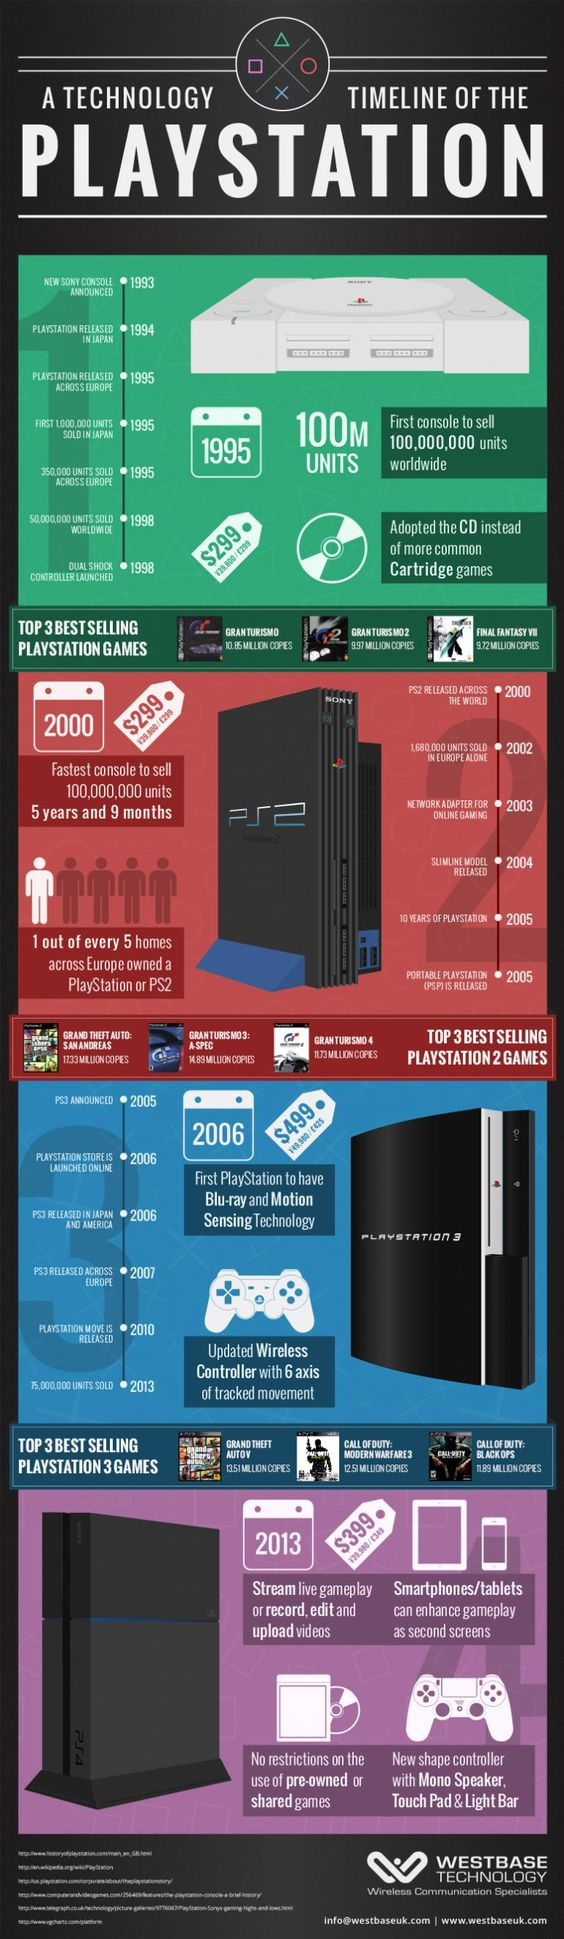 PS4 Infographic: A Technology Timeline Of The Sony PlayStation video Games Consoles including PS1 PS2 PS3 and PS4